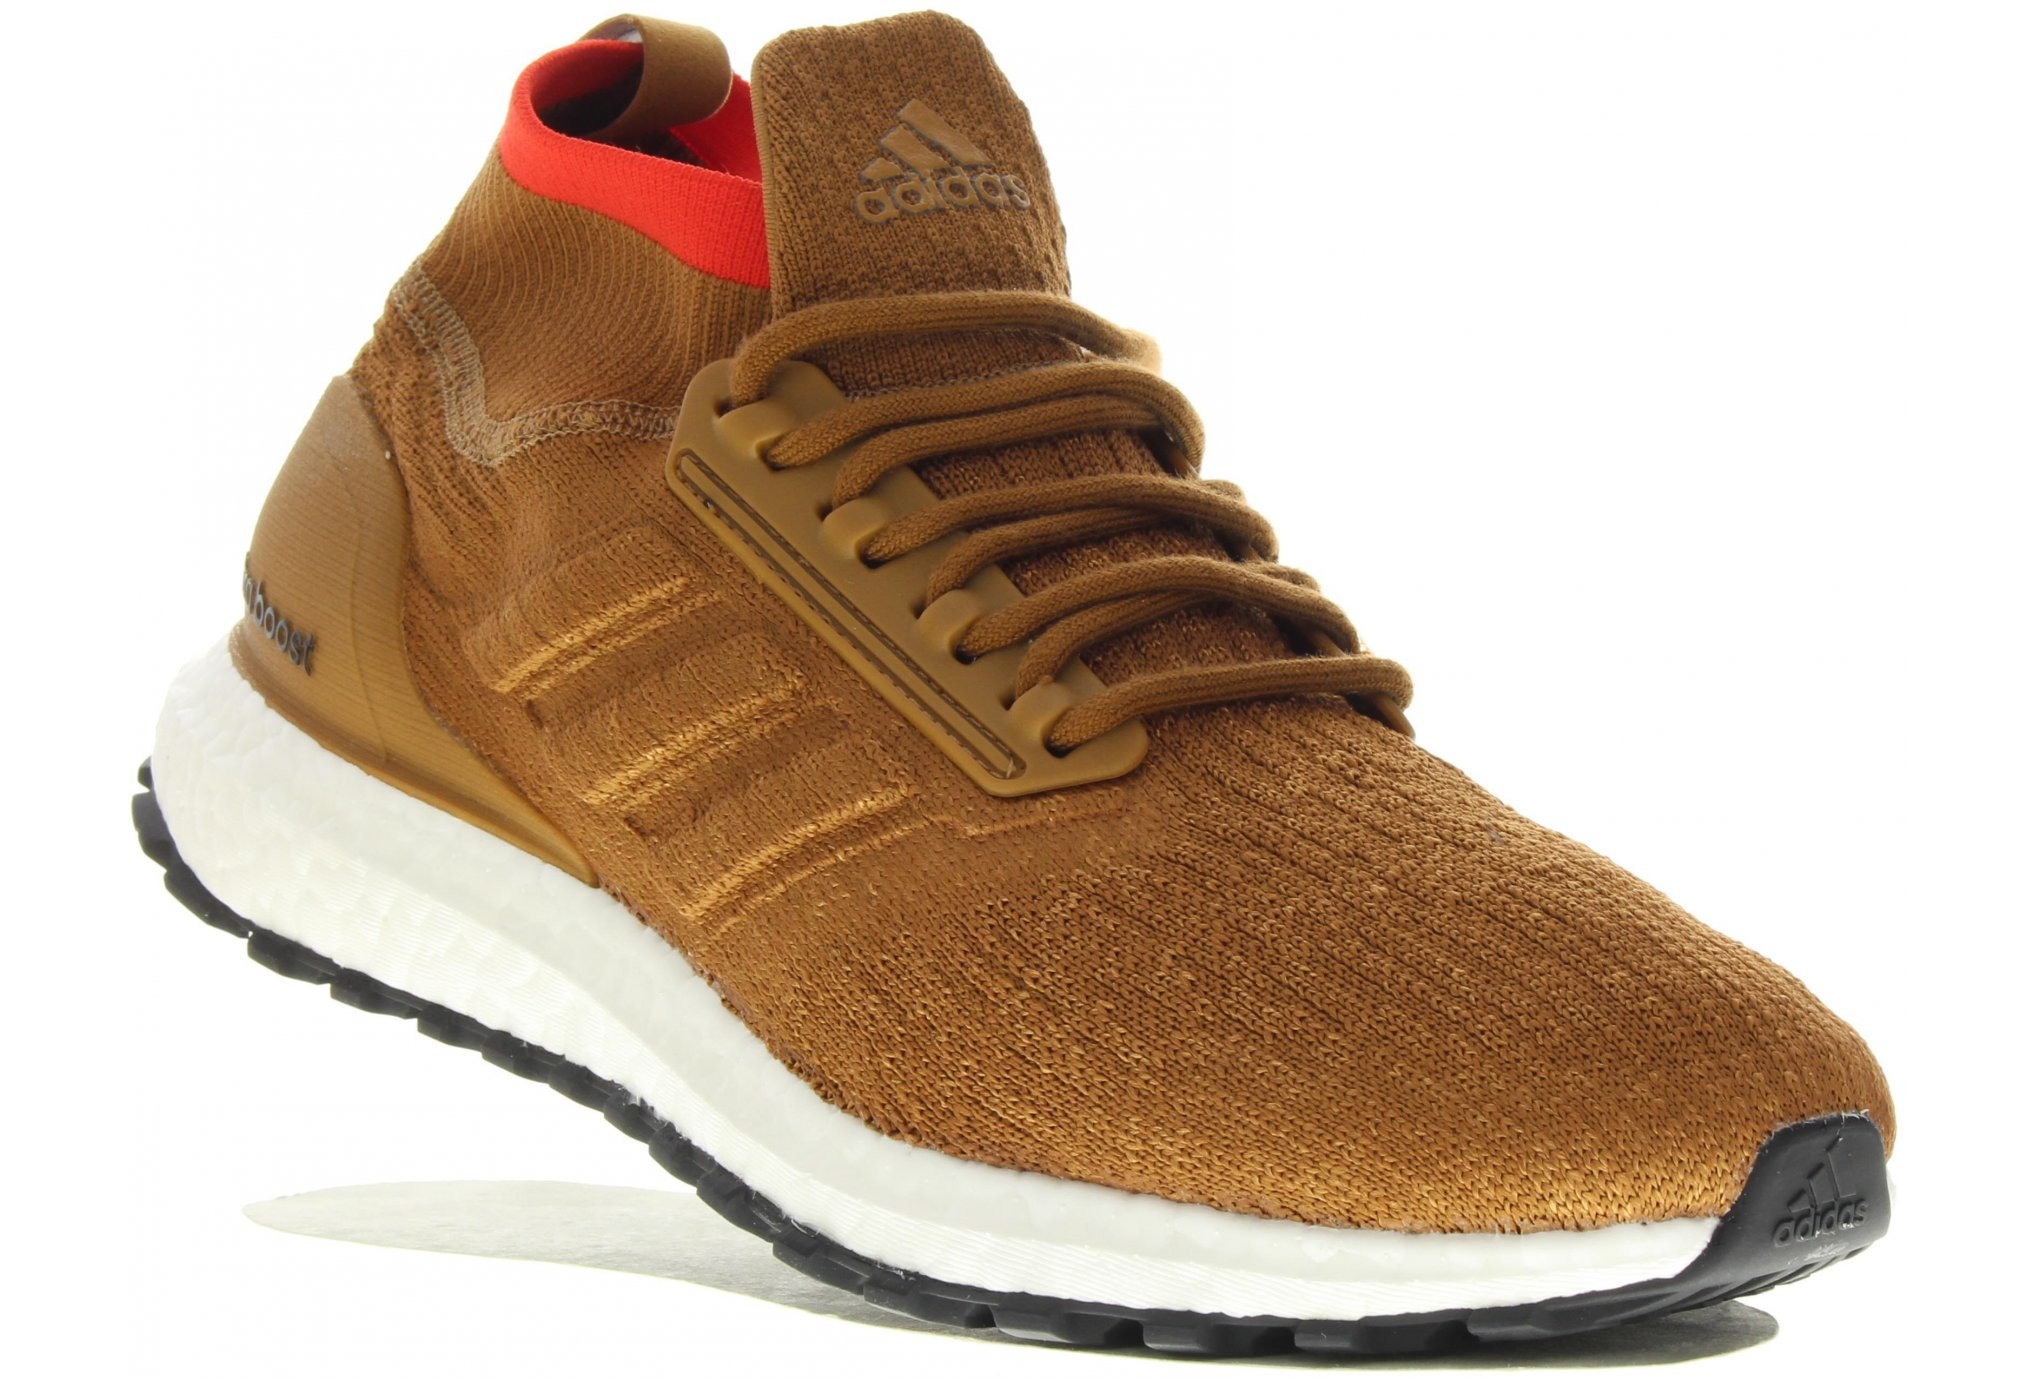 Adidas Ultraboost all terrain m chaussures homme